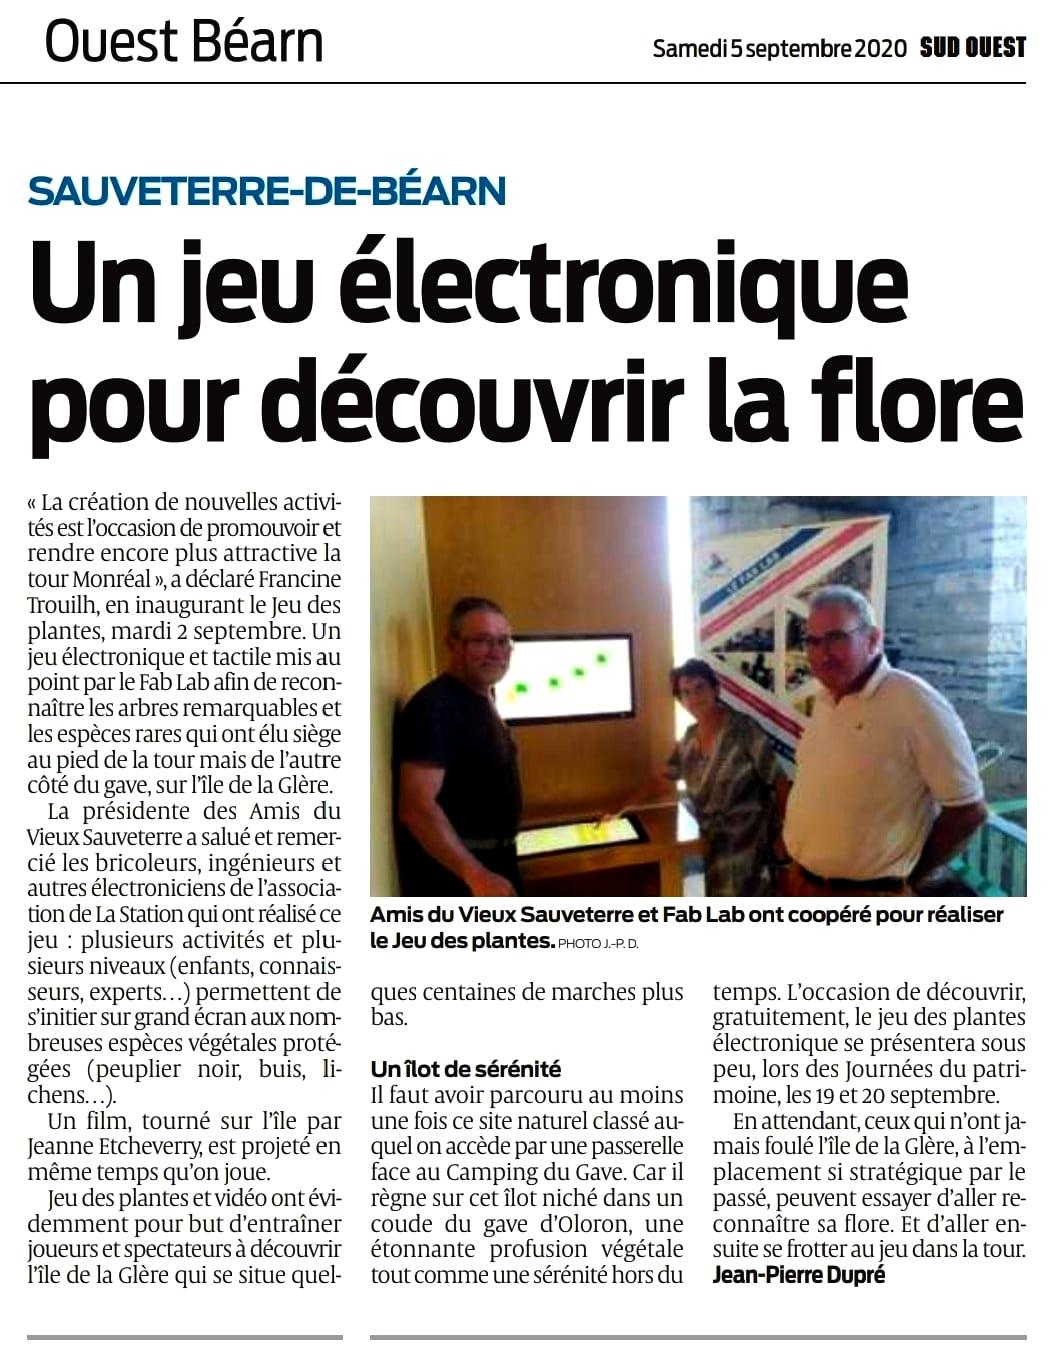 05.09.2020, Sud Ouest